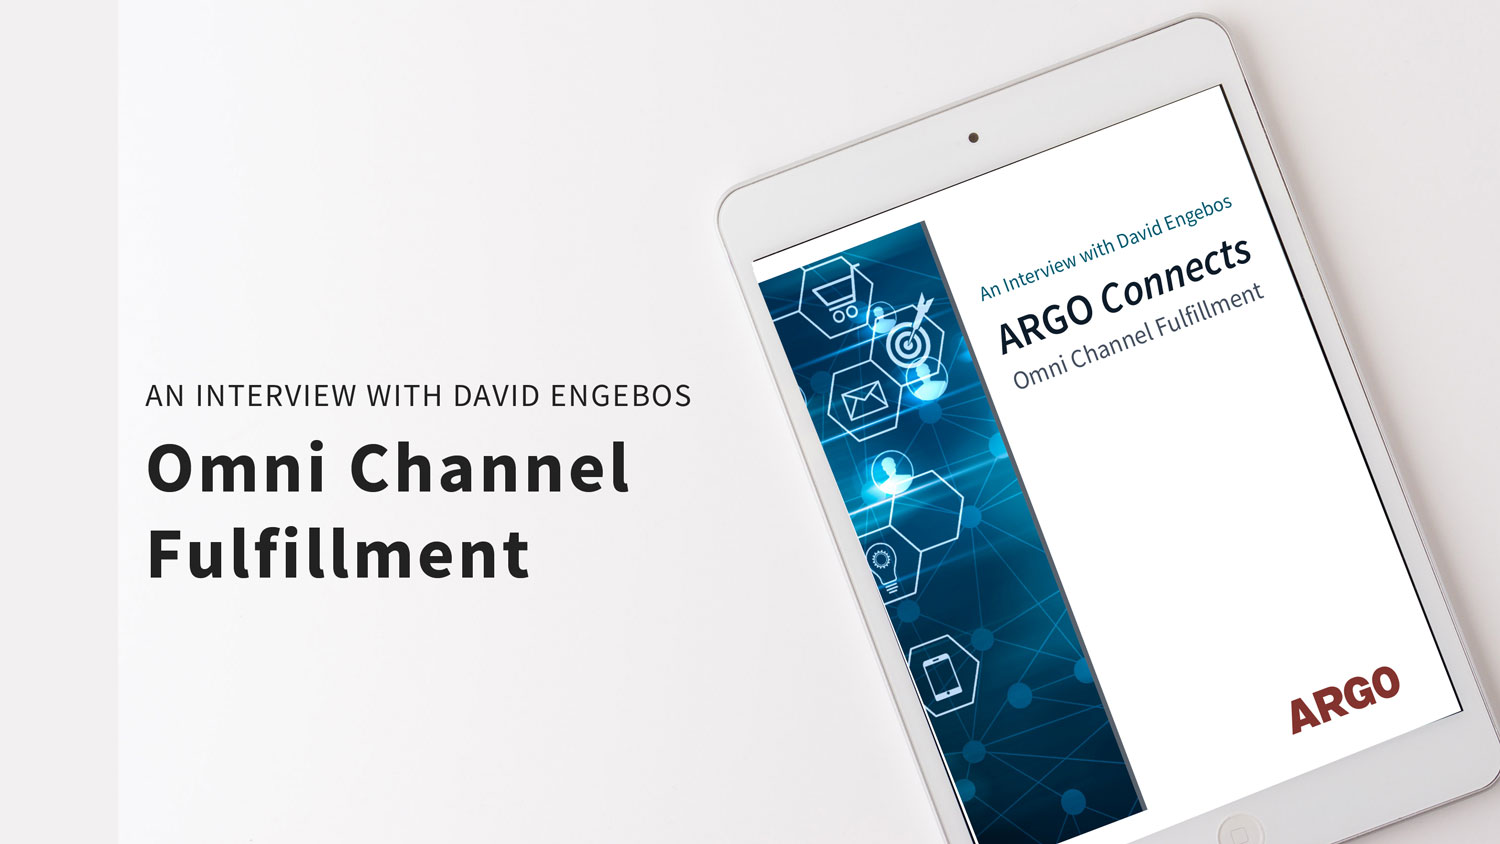 ARGO-connects-2020-omni-channel-fulfillment